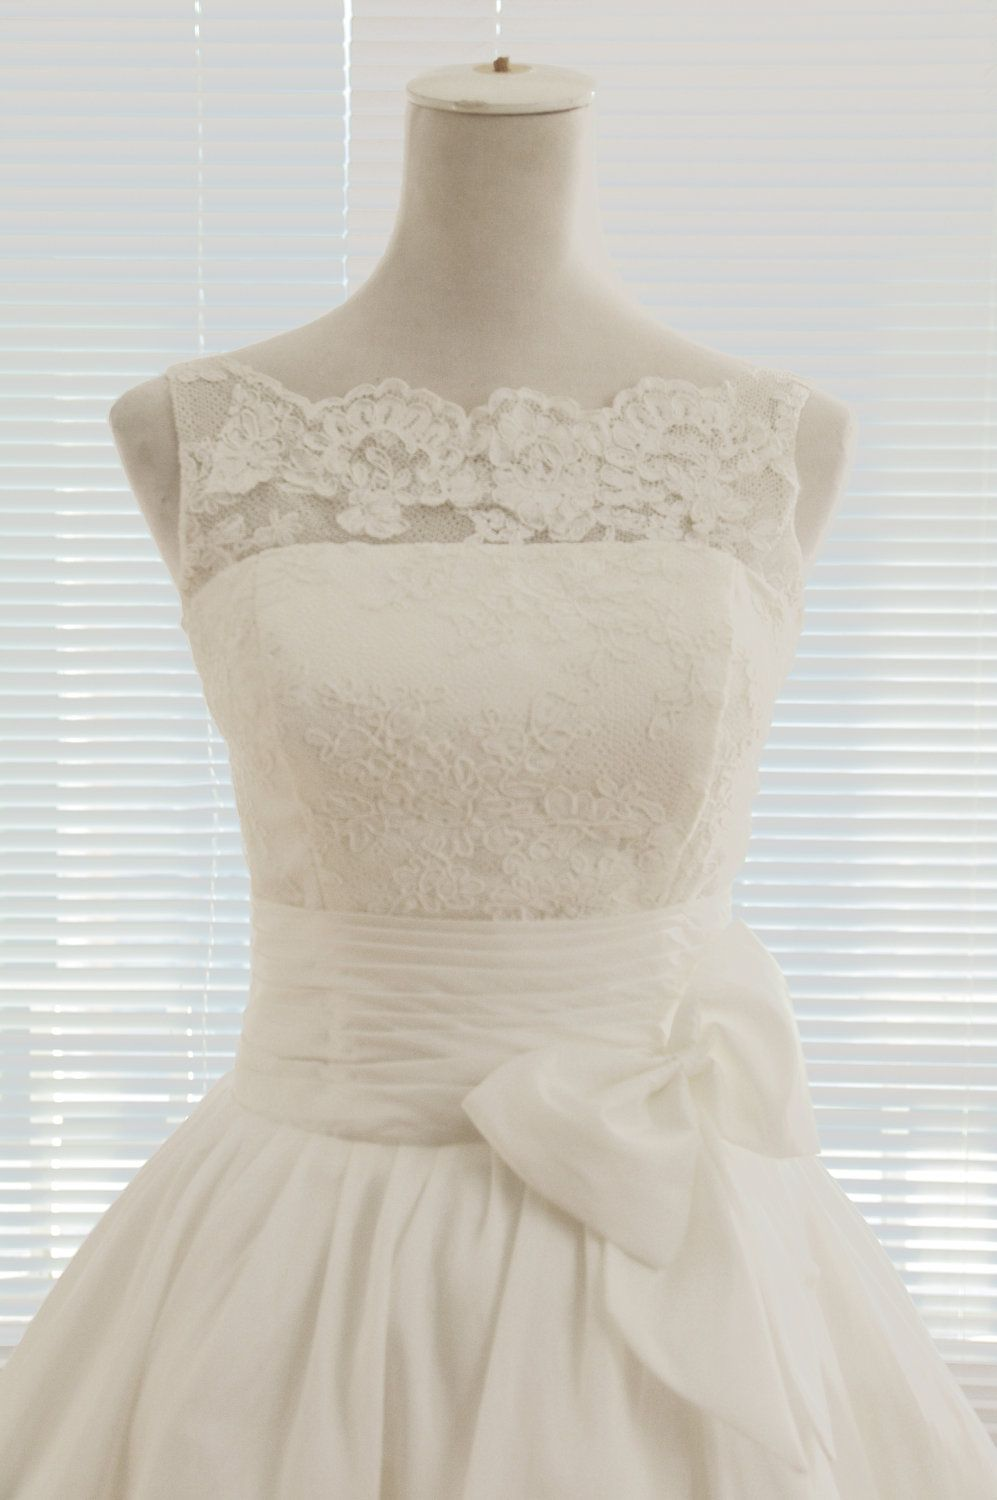 Reserved listing for megan malone meganmalone13 custom make vintage inspired lace taffeta wedding dress bridal gown v back scalloped edge prom ball gown skirt knee tea short wedding dress my jaw dropped at the sight sciox Choice Image